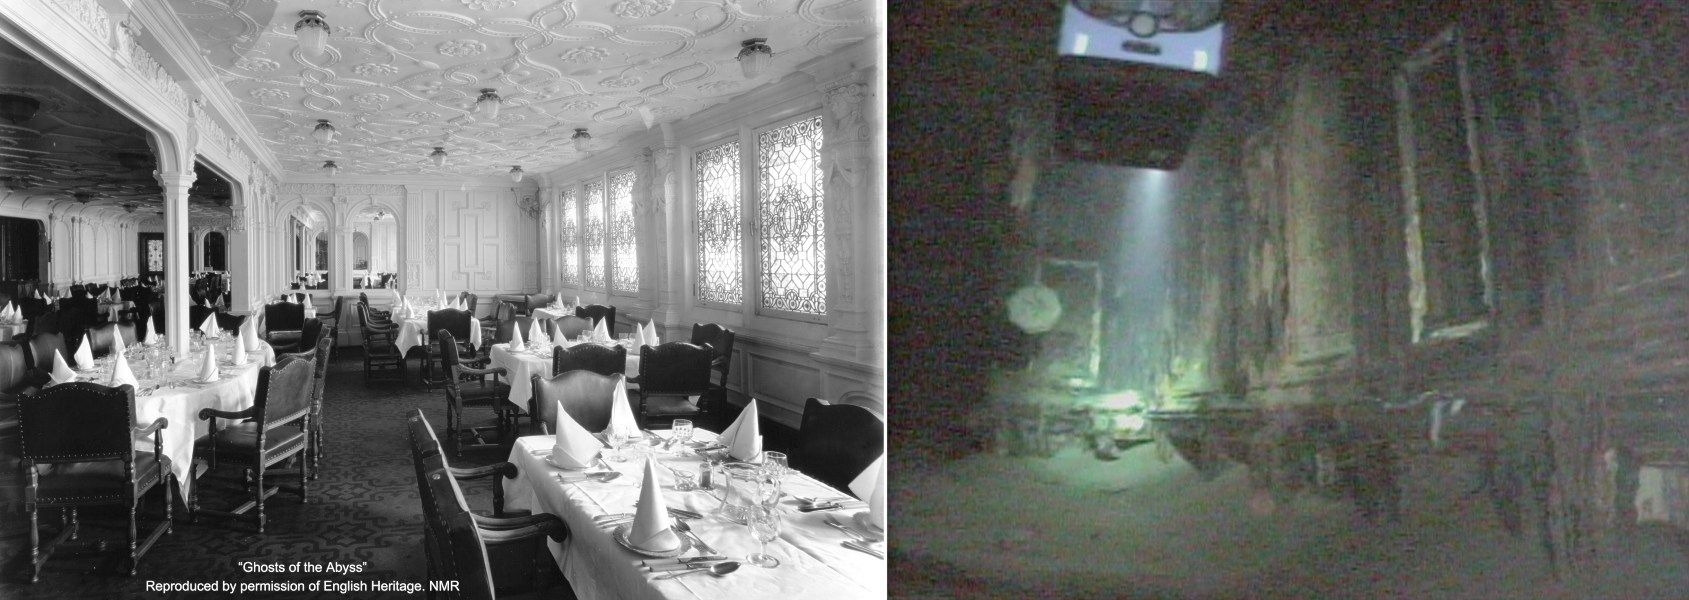 titanic diningroom in 1912 and now. | photo history | pinterest